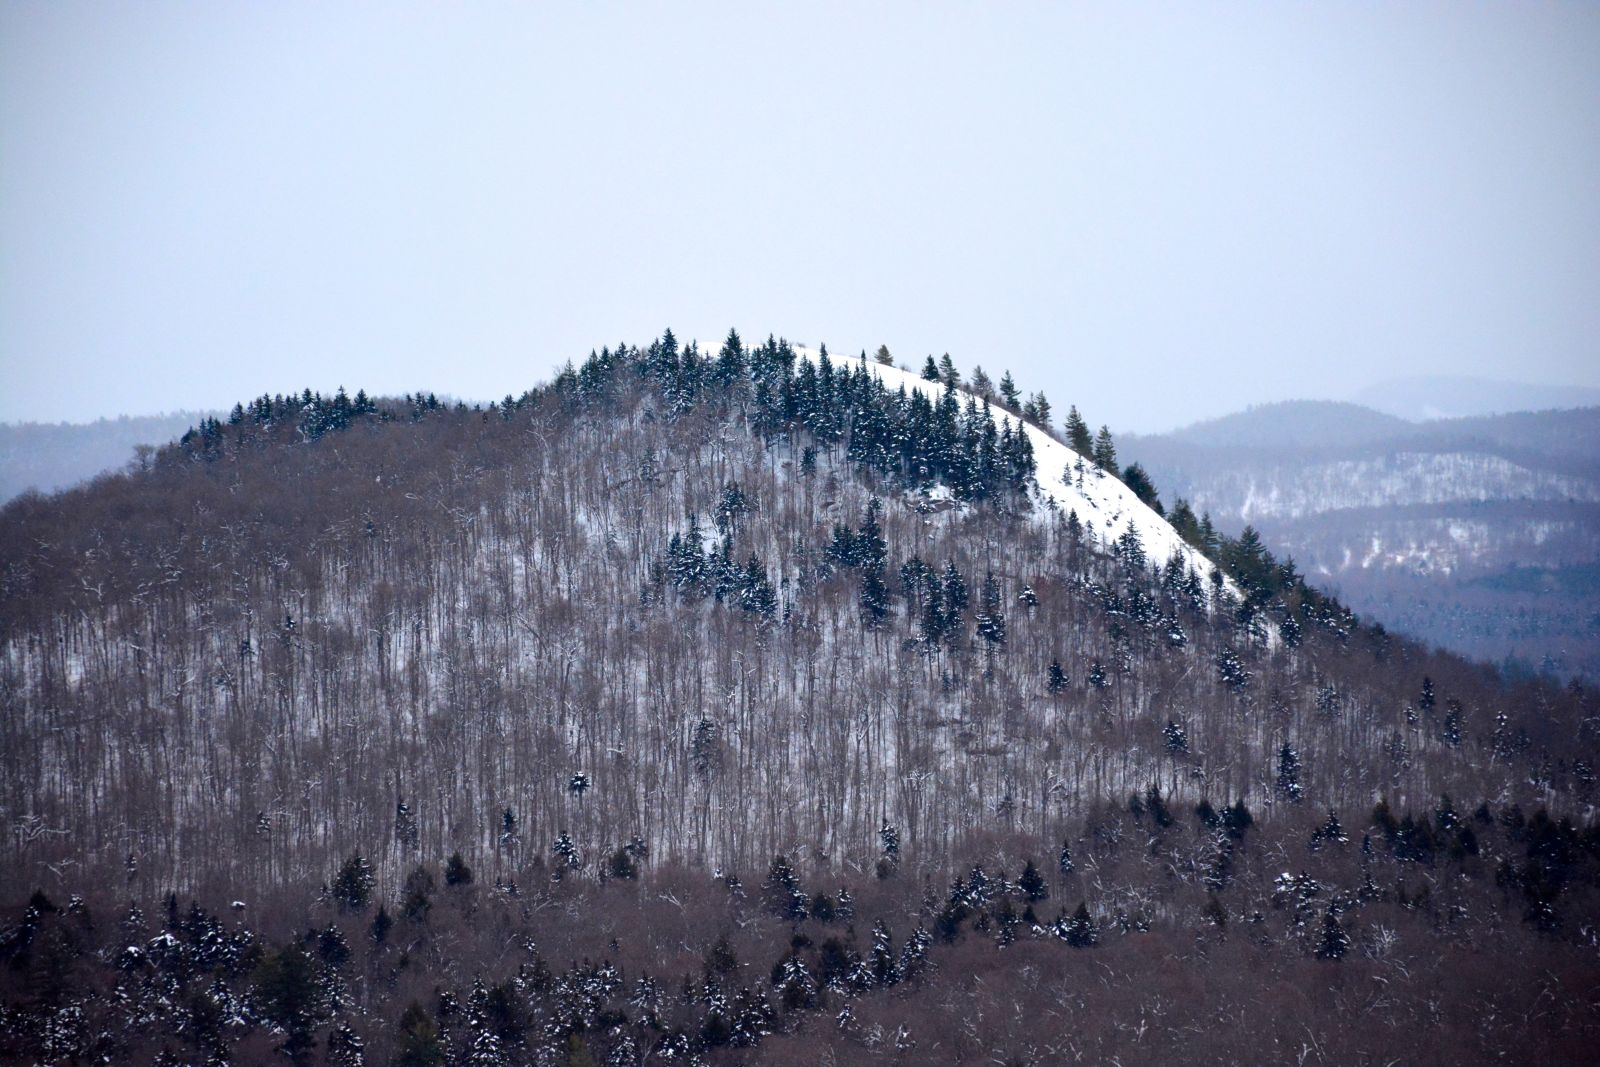 A view of Coney Mountain from the summit of Goodman Mountain